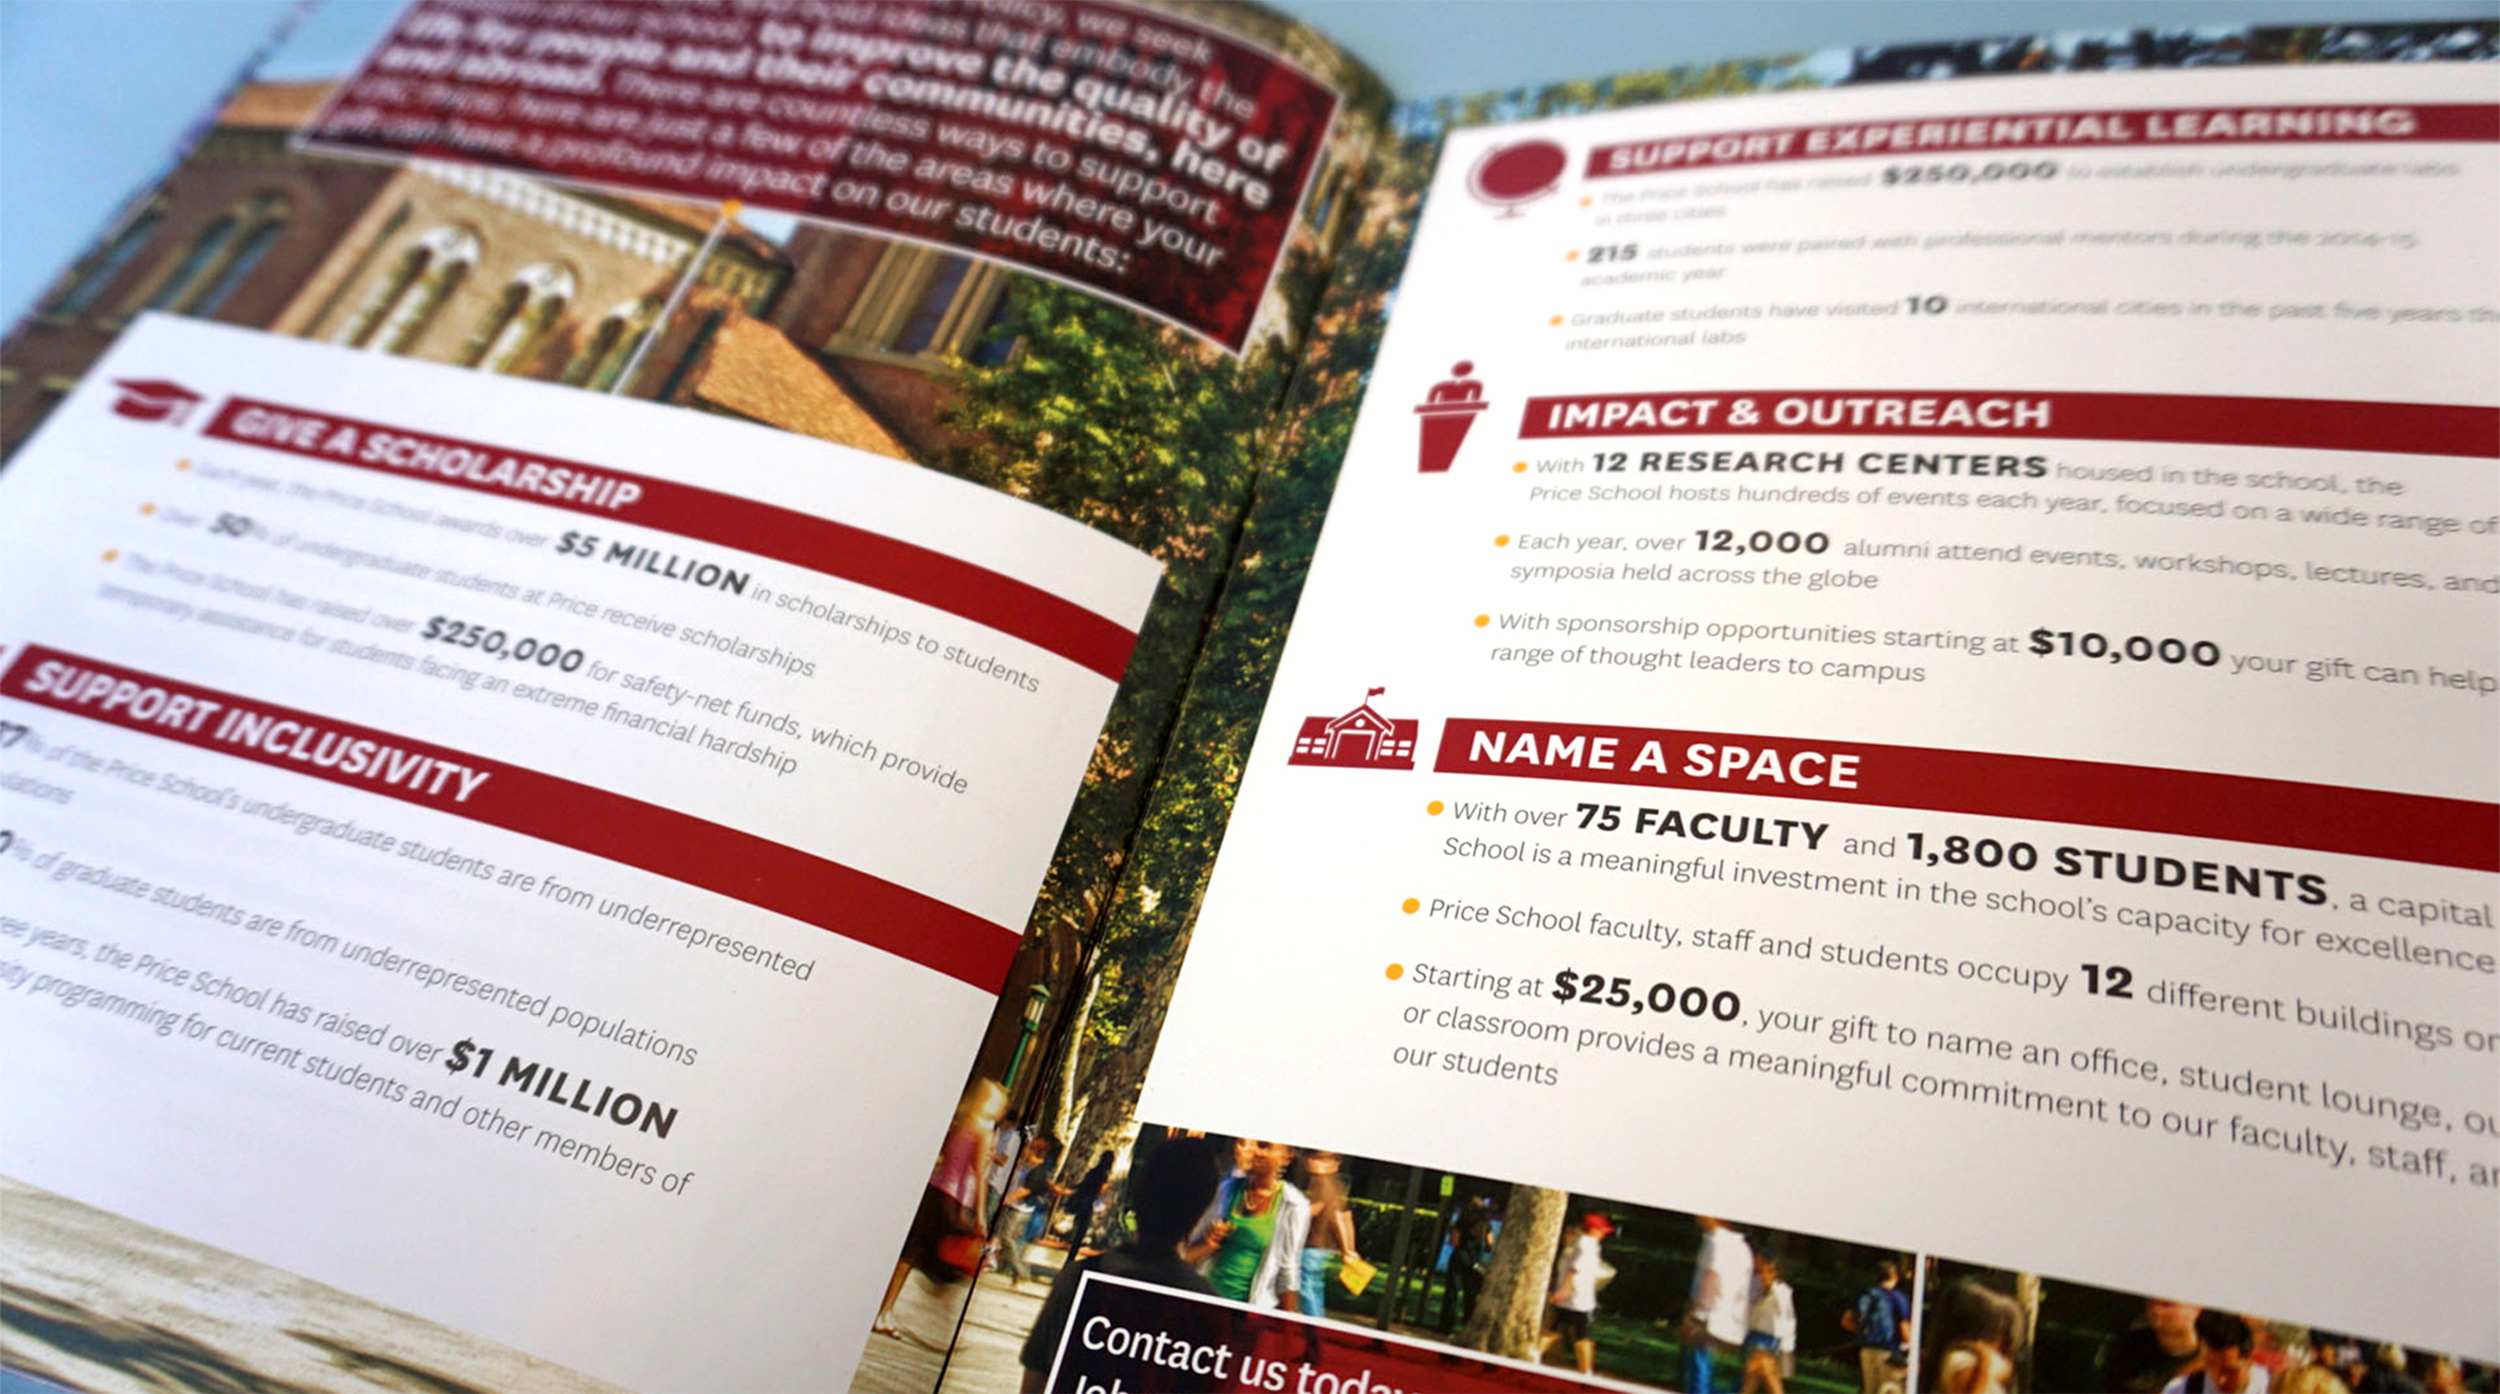 USC Price School Of Public Policy — ETCH Creative